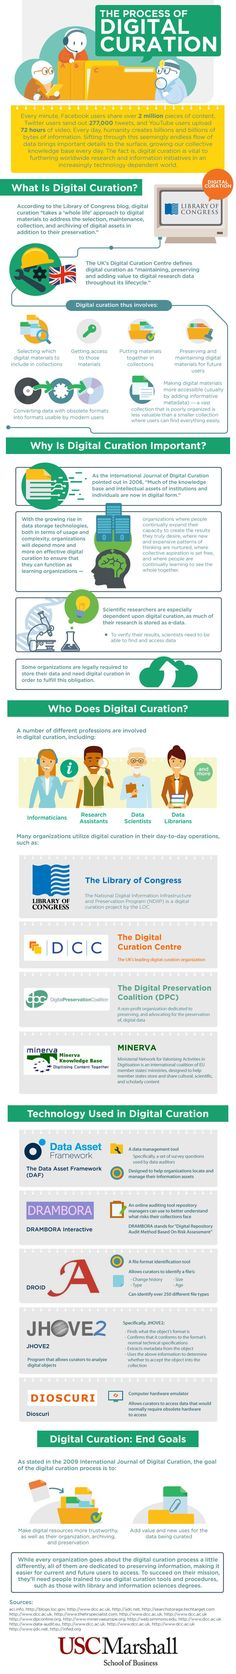 The Process Of Digital Curation illustrated and explained. An informative reference by the Library of Congress.